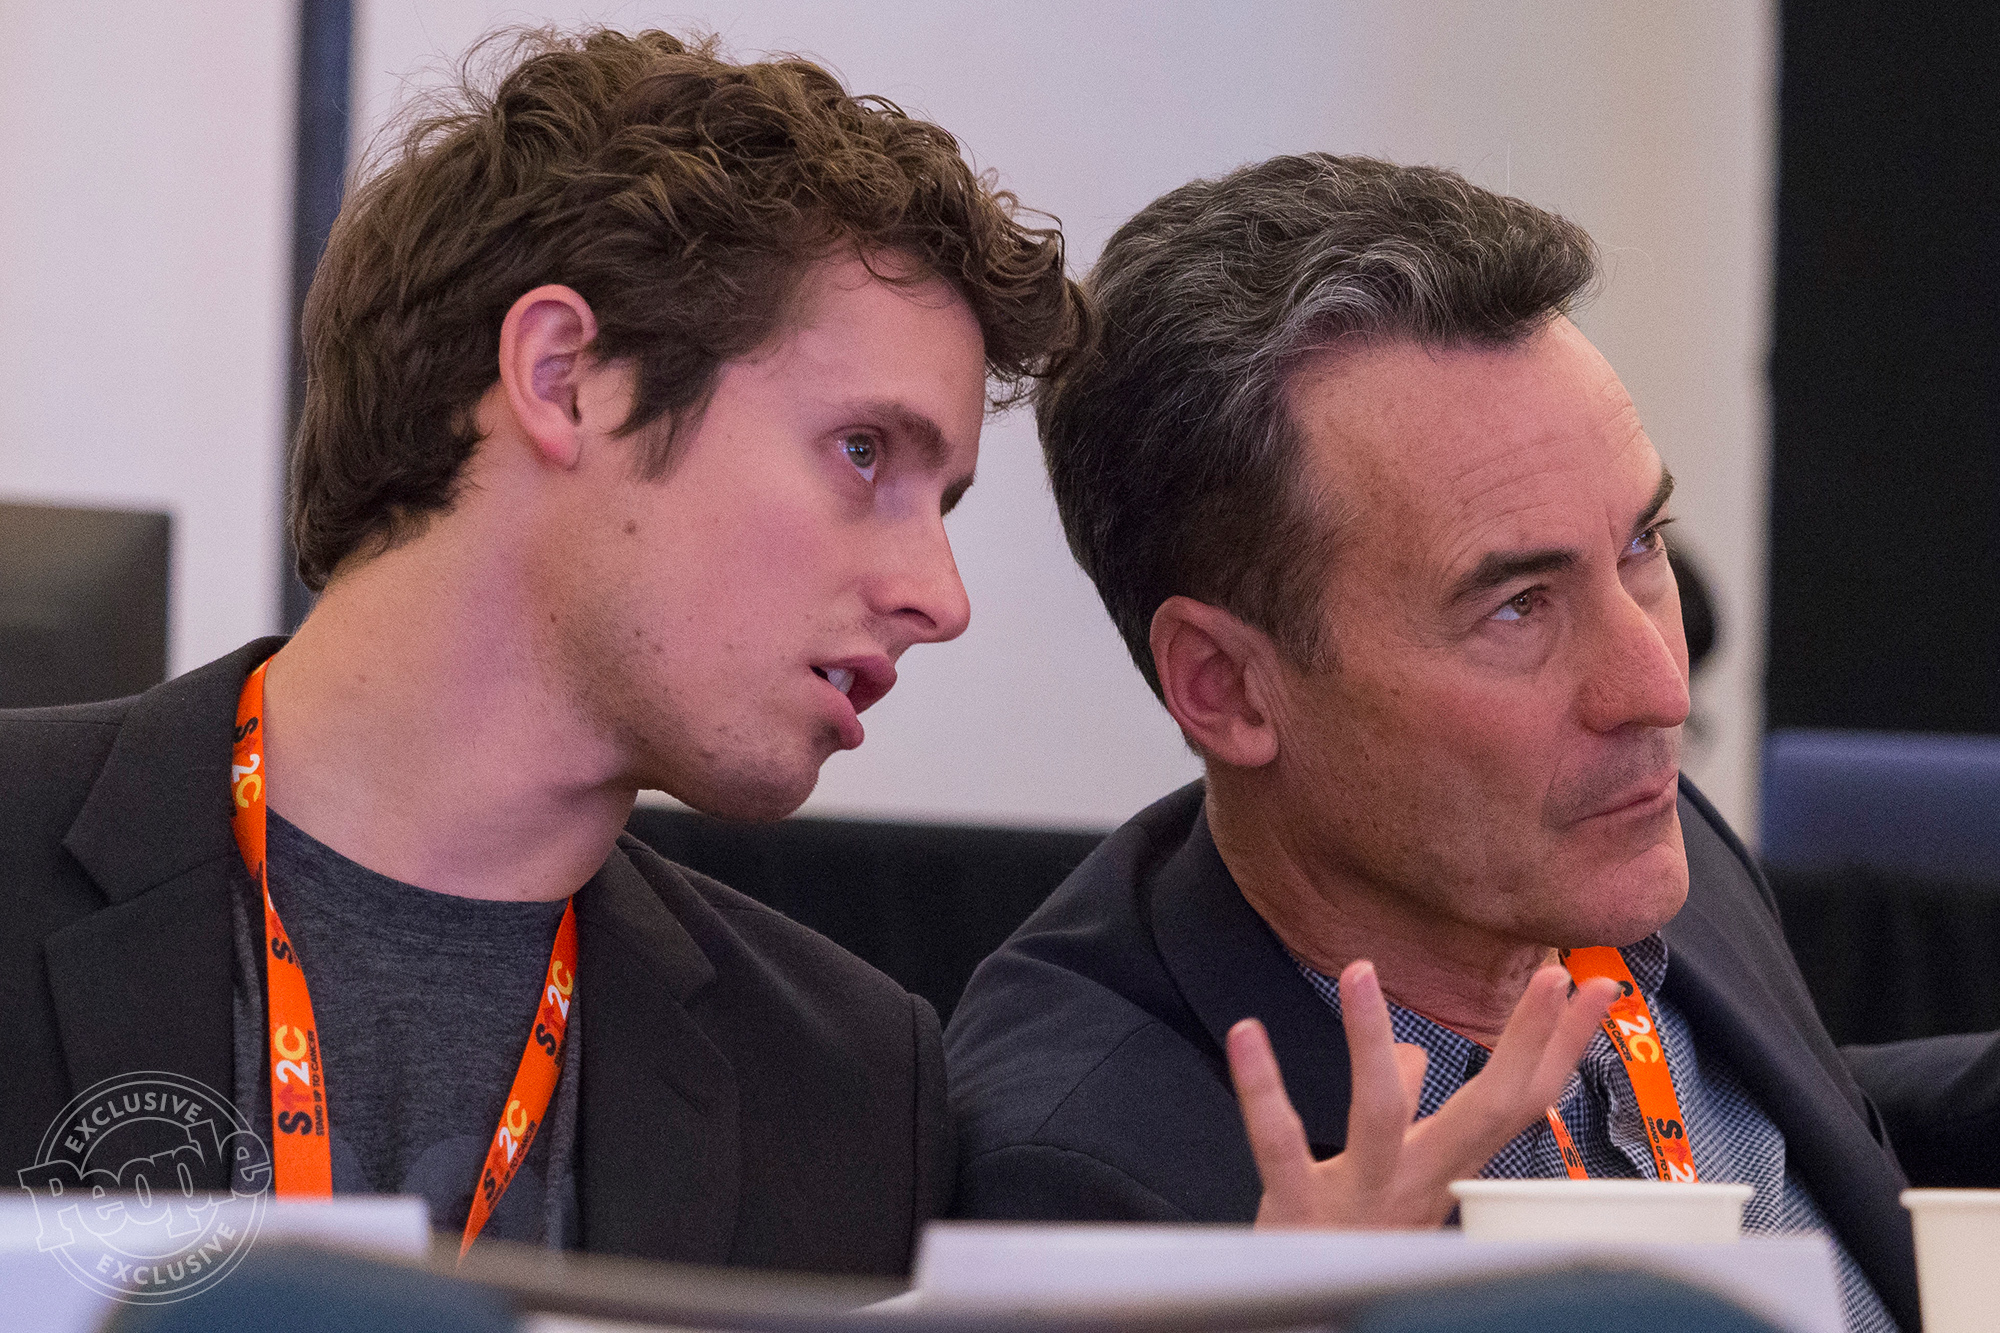 `Santa Monica, CA - SU2C Scientific Summit 2017 - Survivor's Adam Klein, left, chats with his father, Adam Klein, during a presentation by a Stand Up 2 Cancer Lung Cancer team here today, Monday January 23, 2017, during the Stand Up 2 Cancer Scientific Summit. Klein's mother died from stage four lung cancer just two days after the show ended. The SU2C Dream Teams provided detailed reports on their progress in various areas of cancer research. Photo by © AACR/Todd Buchanan 2017 Technical Questions: todd@medmeetingimages.com